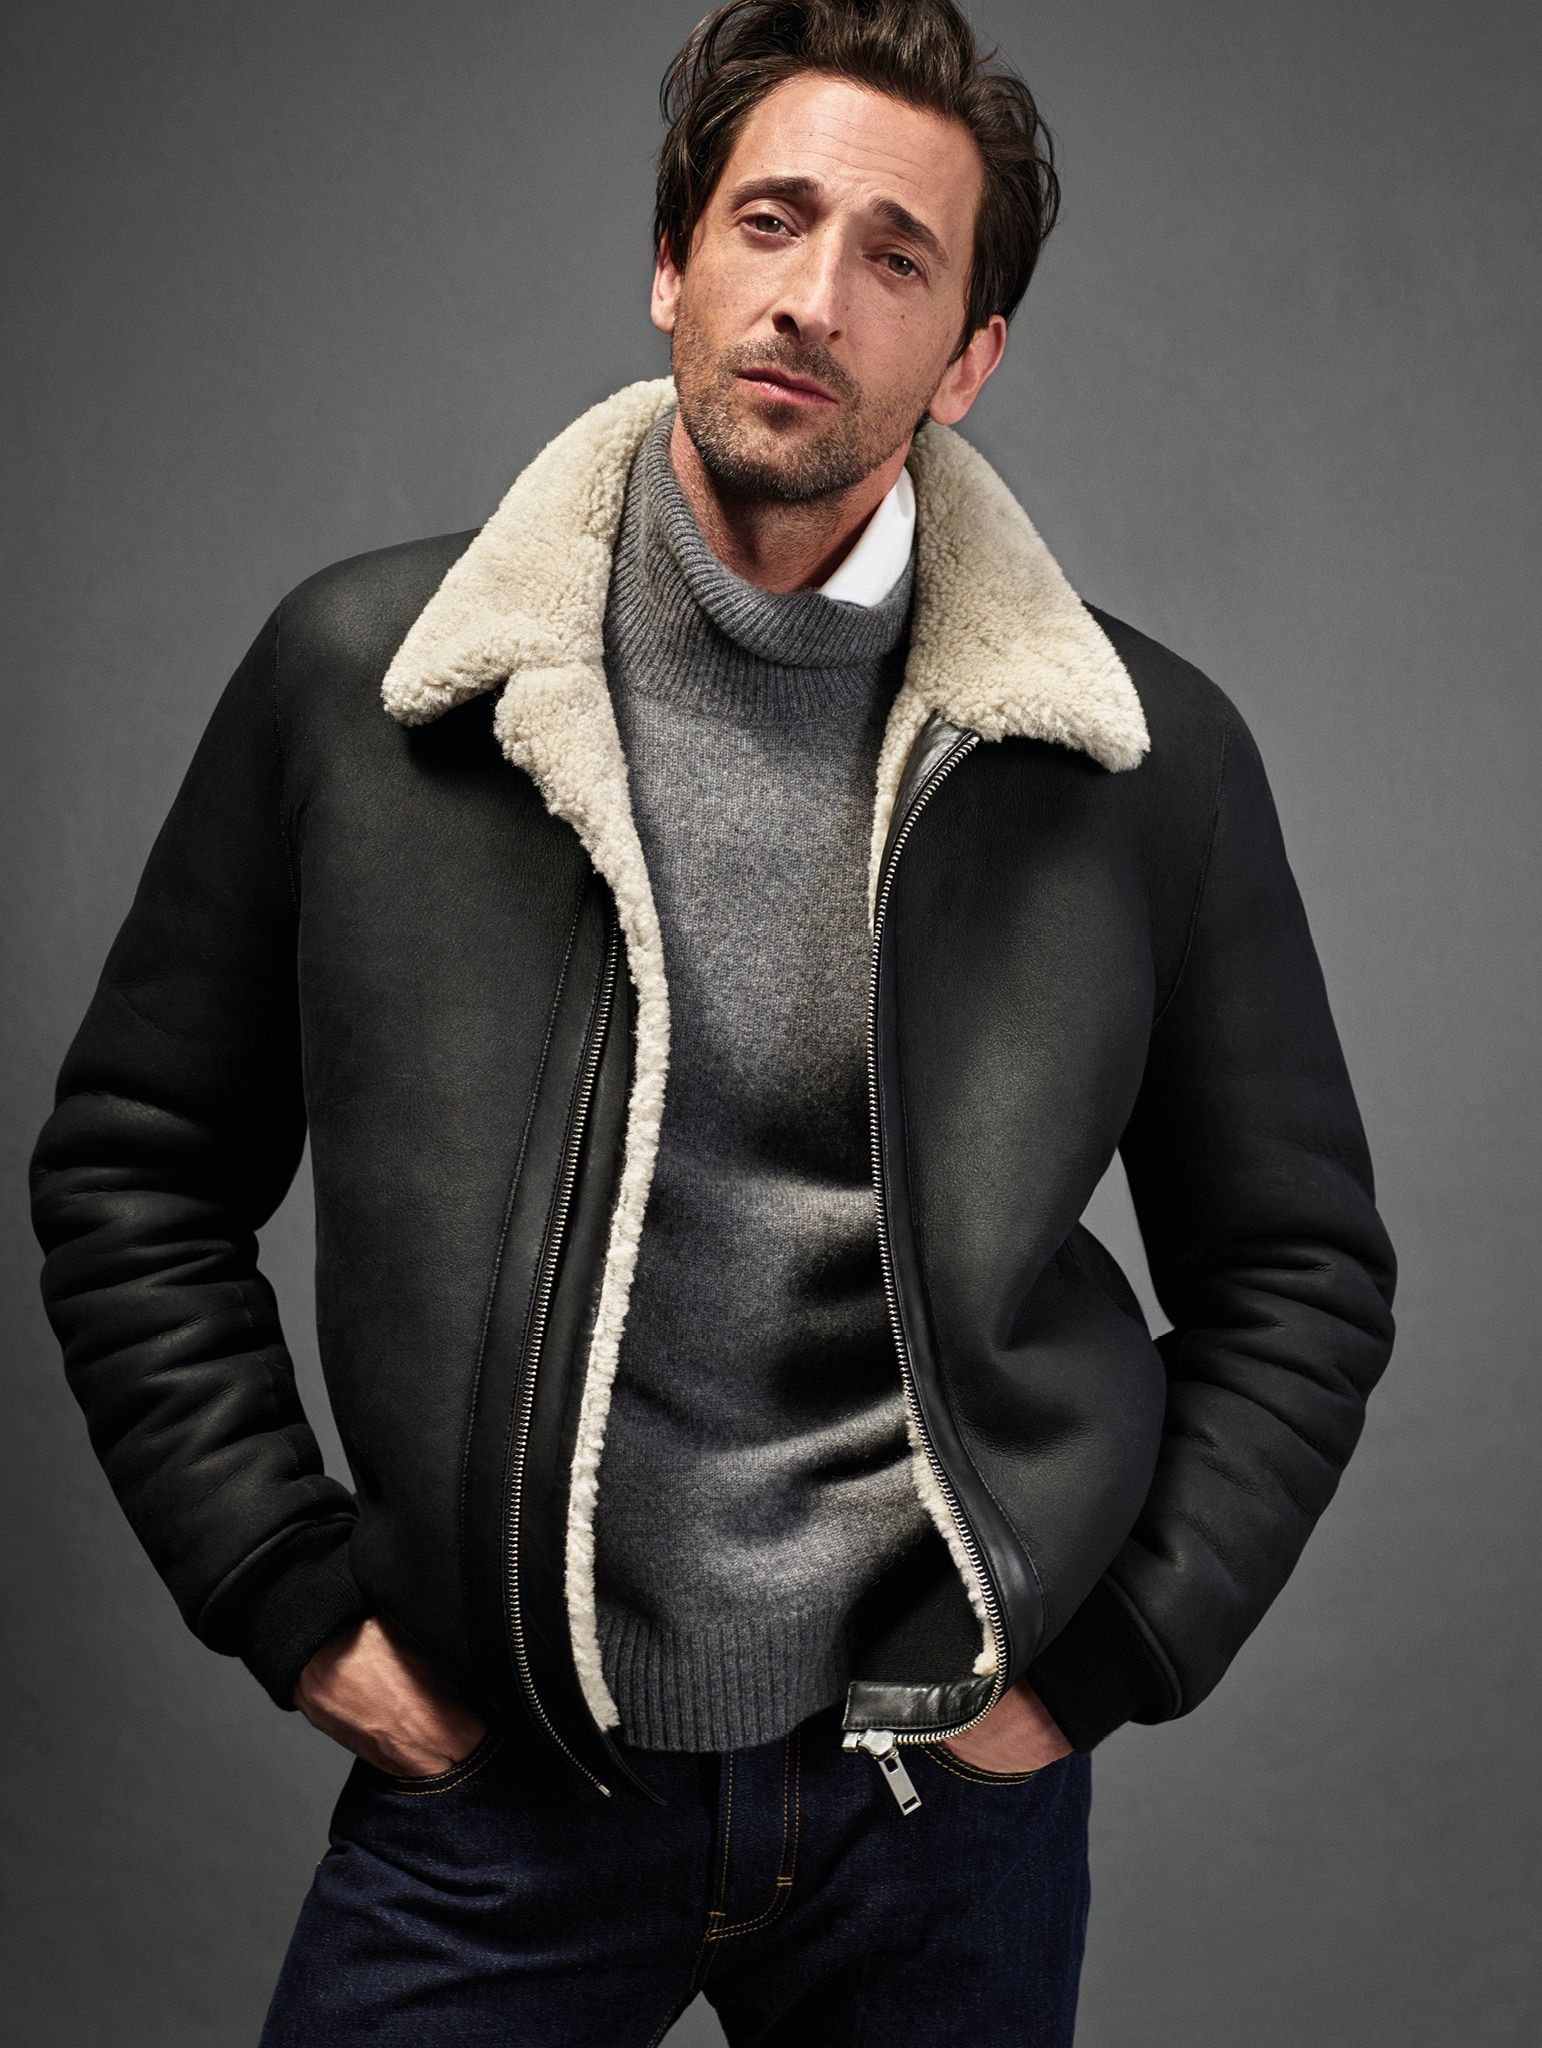 9a276ad1a MANGO MAN FW'18 | 10th Anniversary Collection - Adrien Brody ...